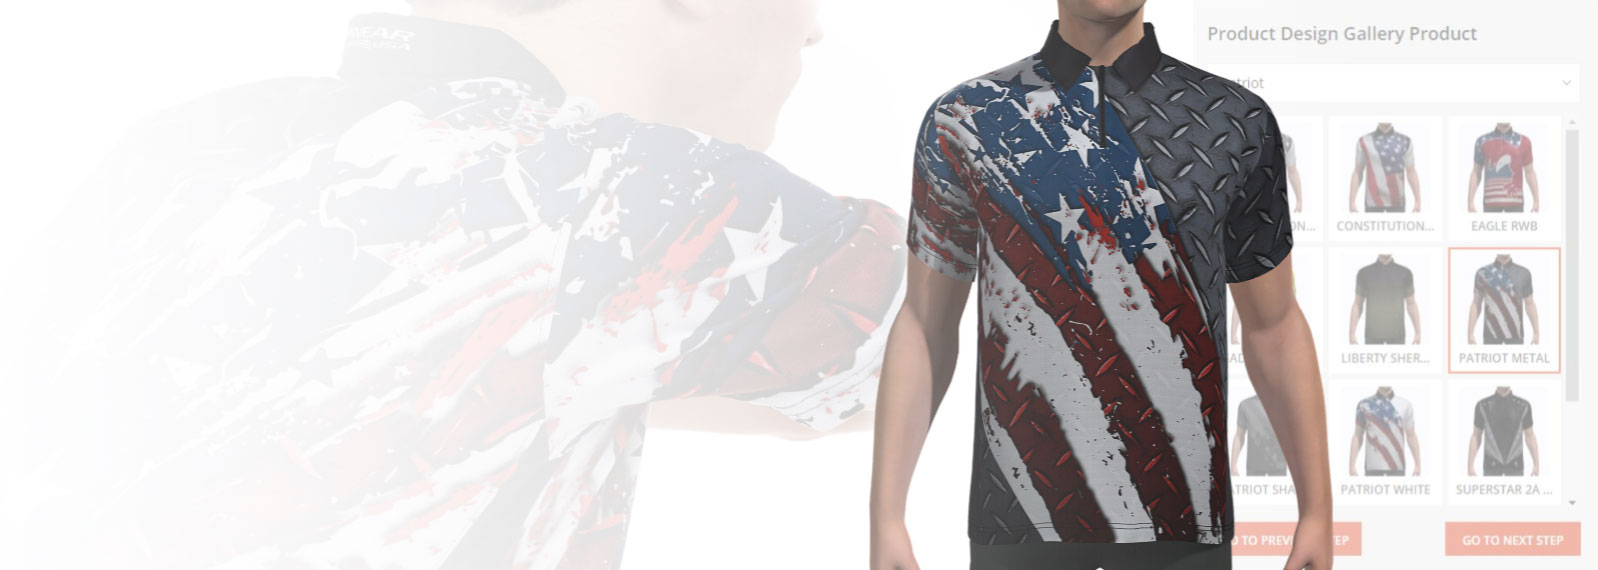 8757d348c WELCOME TO TECHWEAR USA NEW Custom Product Designer Customize your favorite  TechWearUSA gear using our new Product Designer Featuring Camo & Patriotic  ...